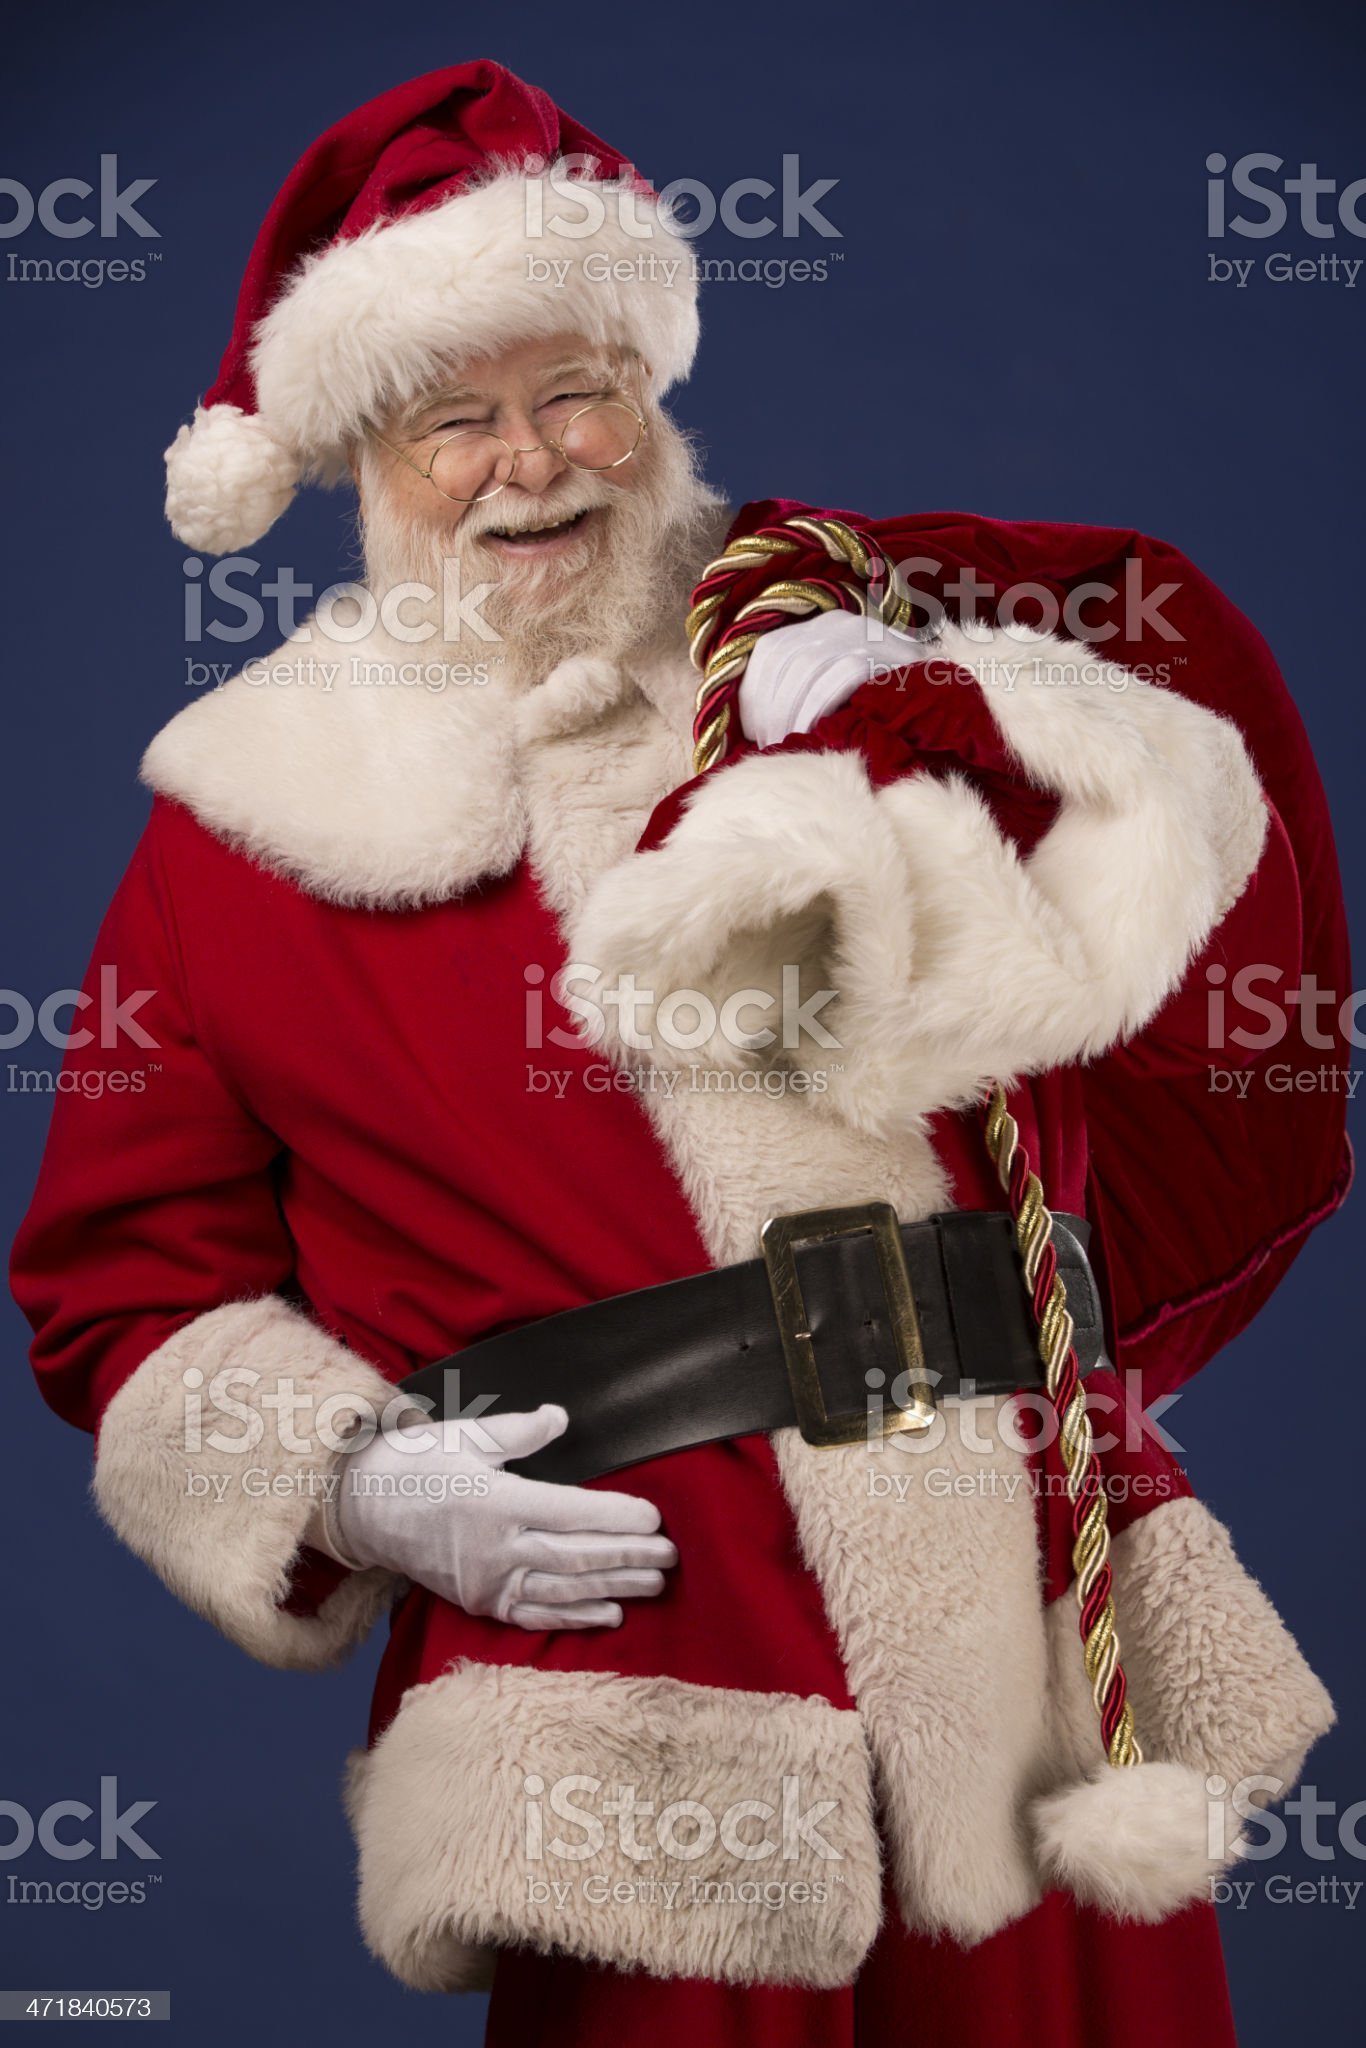 Pictures of Vintage Real Santa Claus carrying gift sack royalty-free stock photo